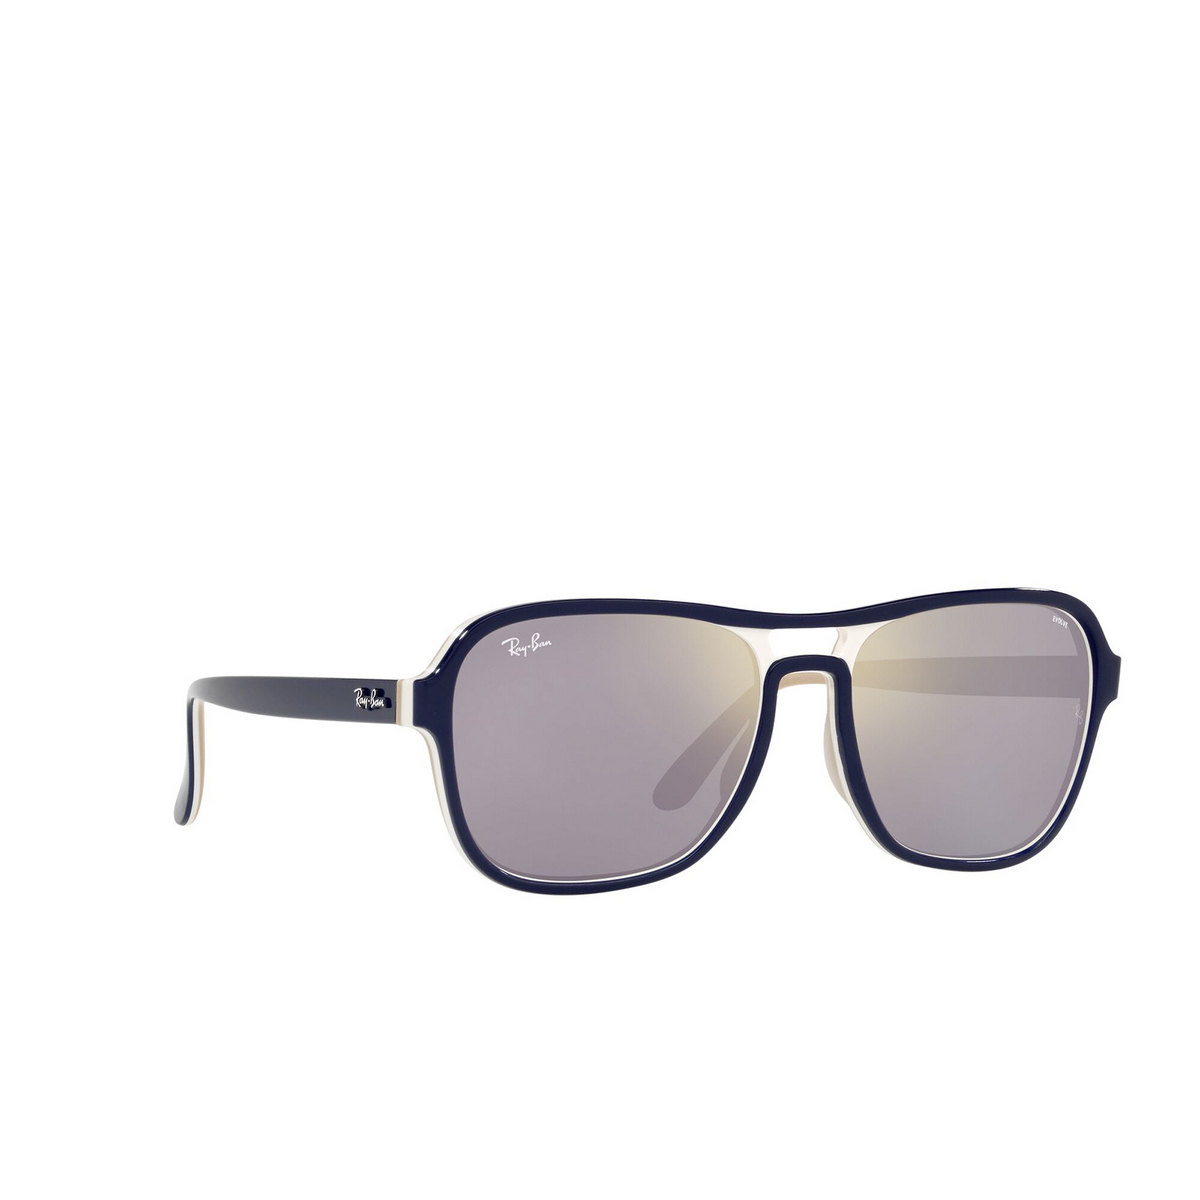 Ray-Ban® Square Sunglasses: State Side RB4356 color Blu Creamy Light Brown 6548B3 - three-quarters view.